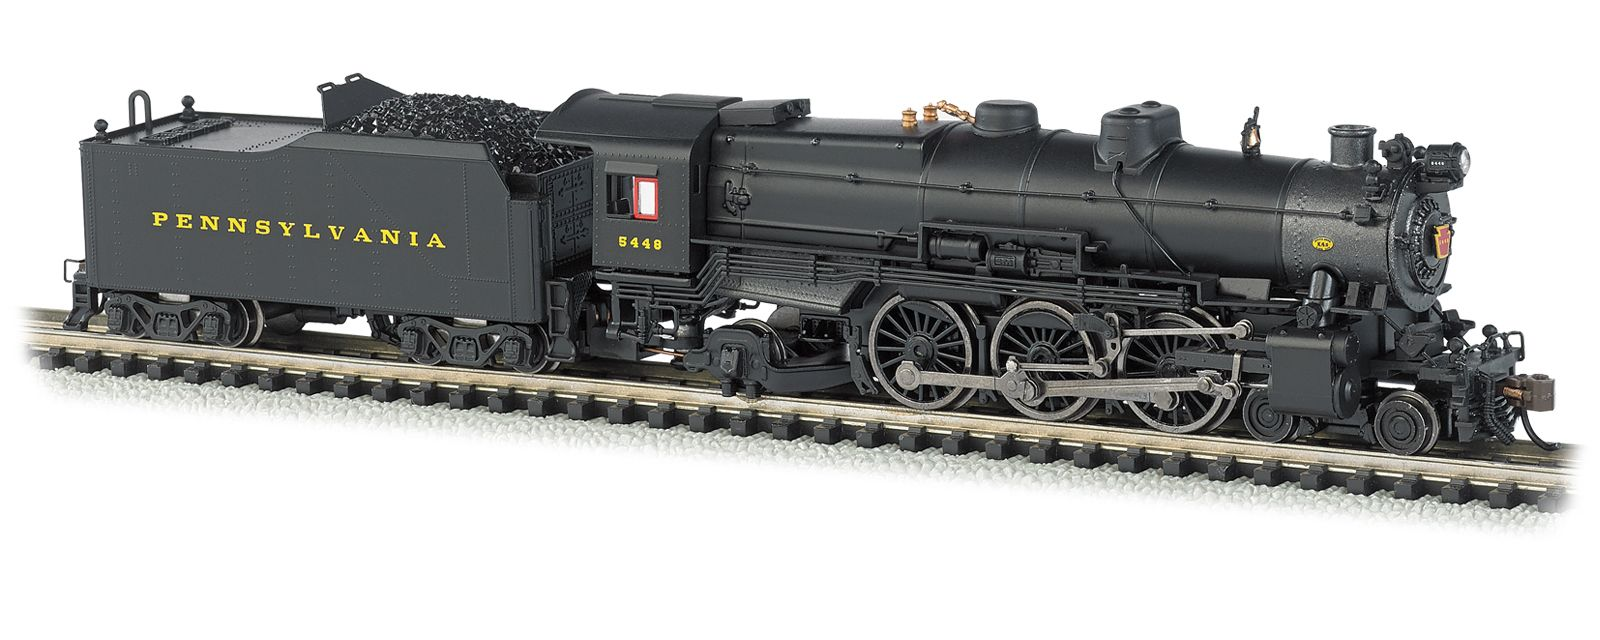 Scale steam locomotives for sale n scale steam locomotives - Bachmann N Scale Standard Line K4 4 6 2 Steam Locomotive With Sound